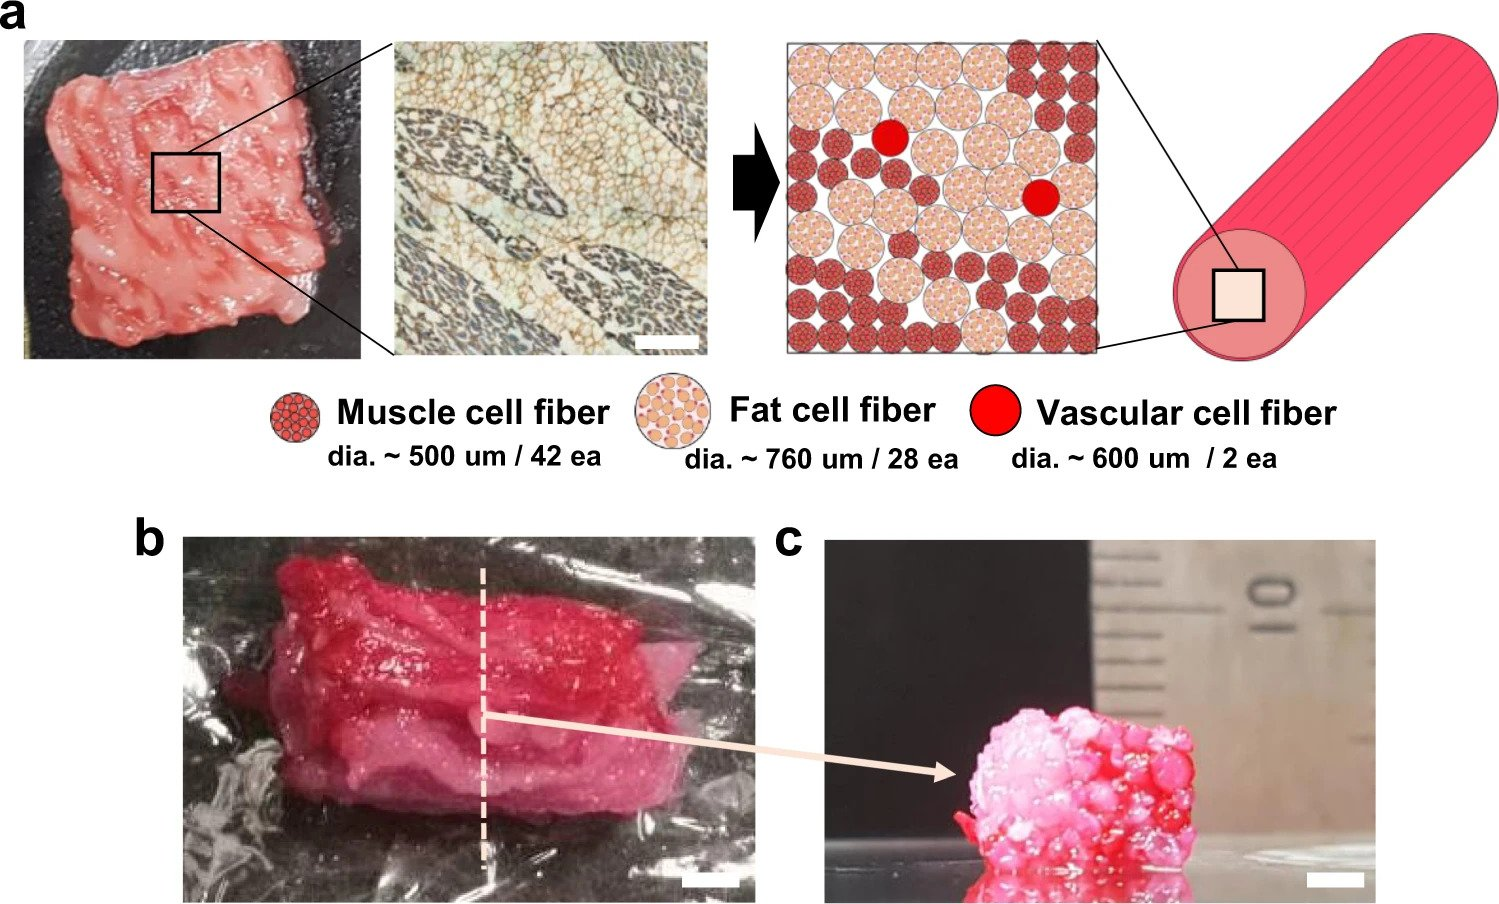 Assembly of fibrous muscle, fat, and vascular tissues to cultured steak. Image via Nature Communications.